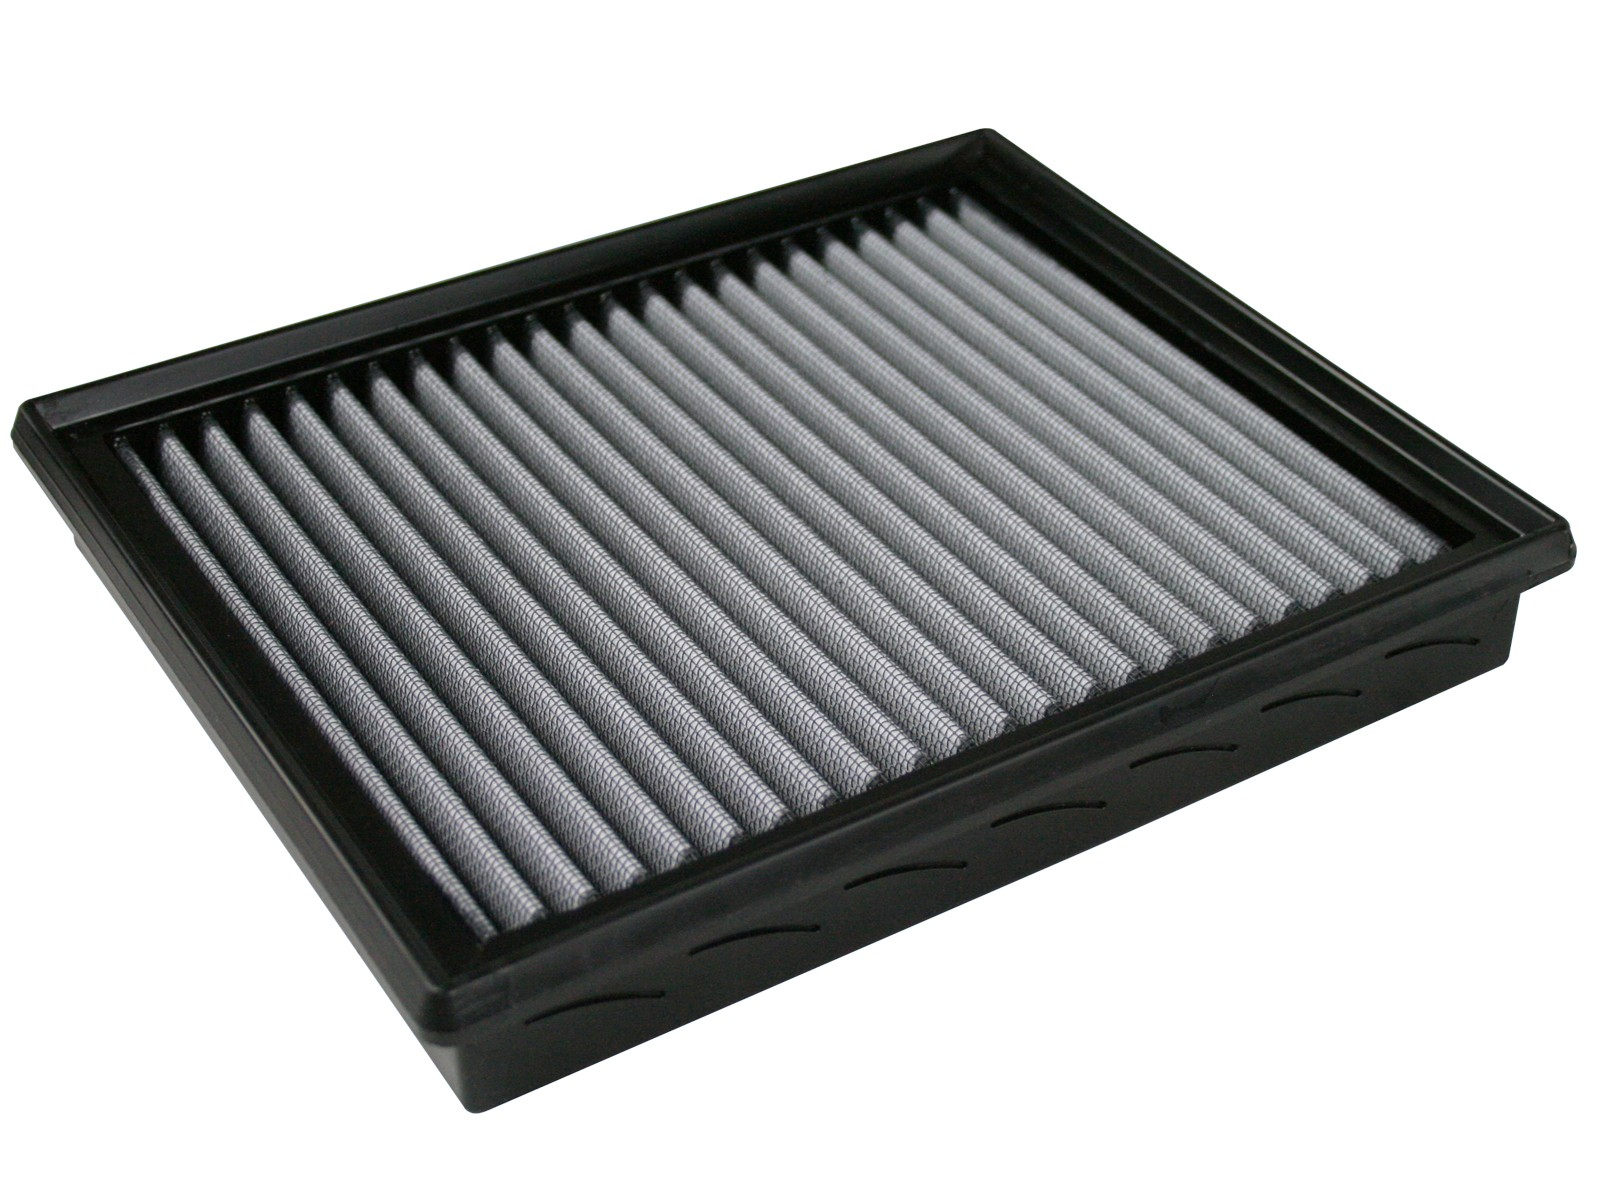 aFe POWER 31-10044 Magnum FLOW Pro DRY S Air Filter